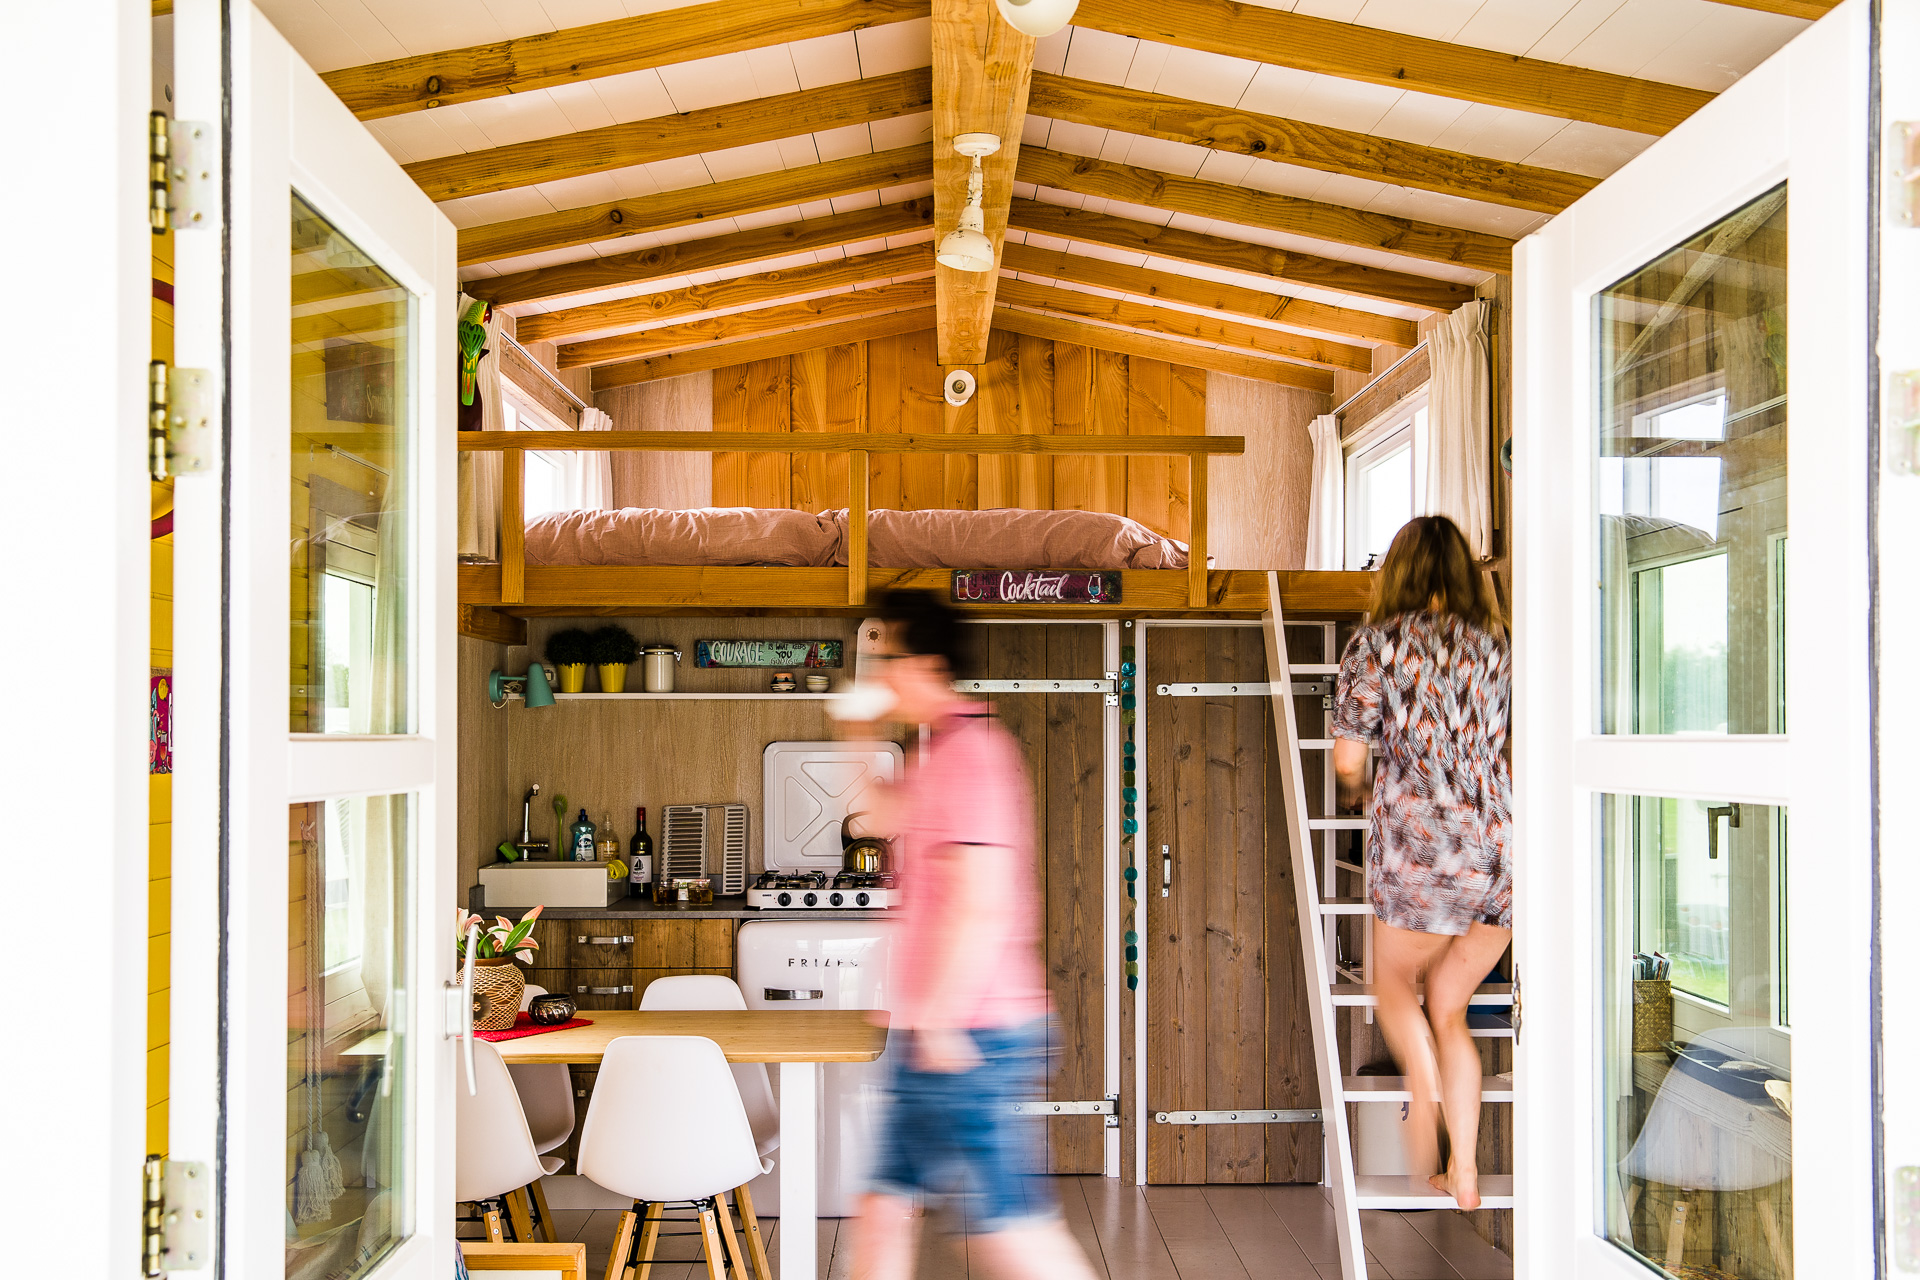 Tiny House Schoonhoven airbnb